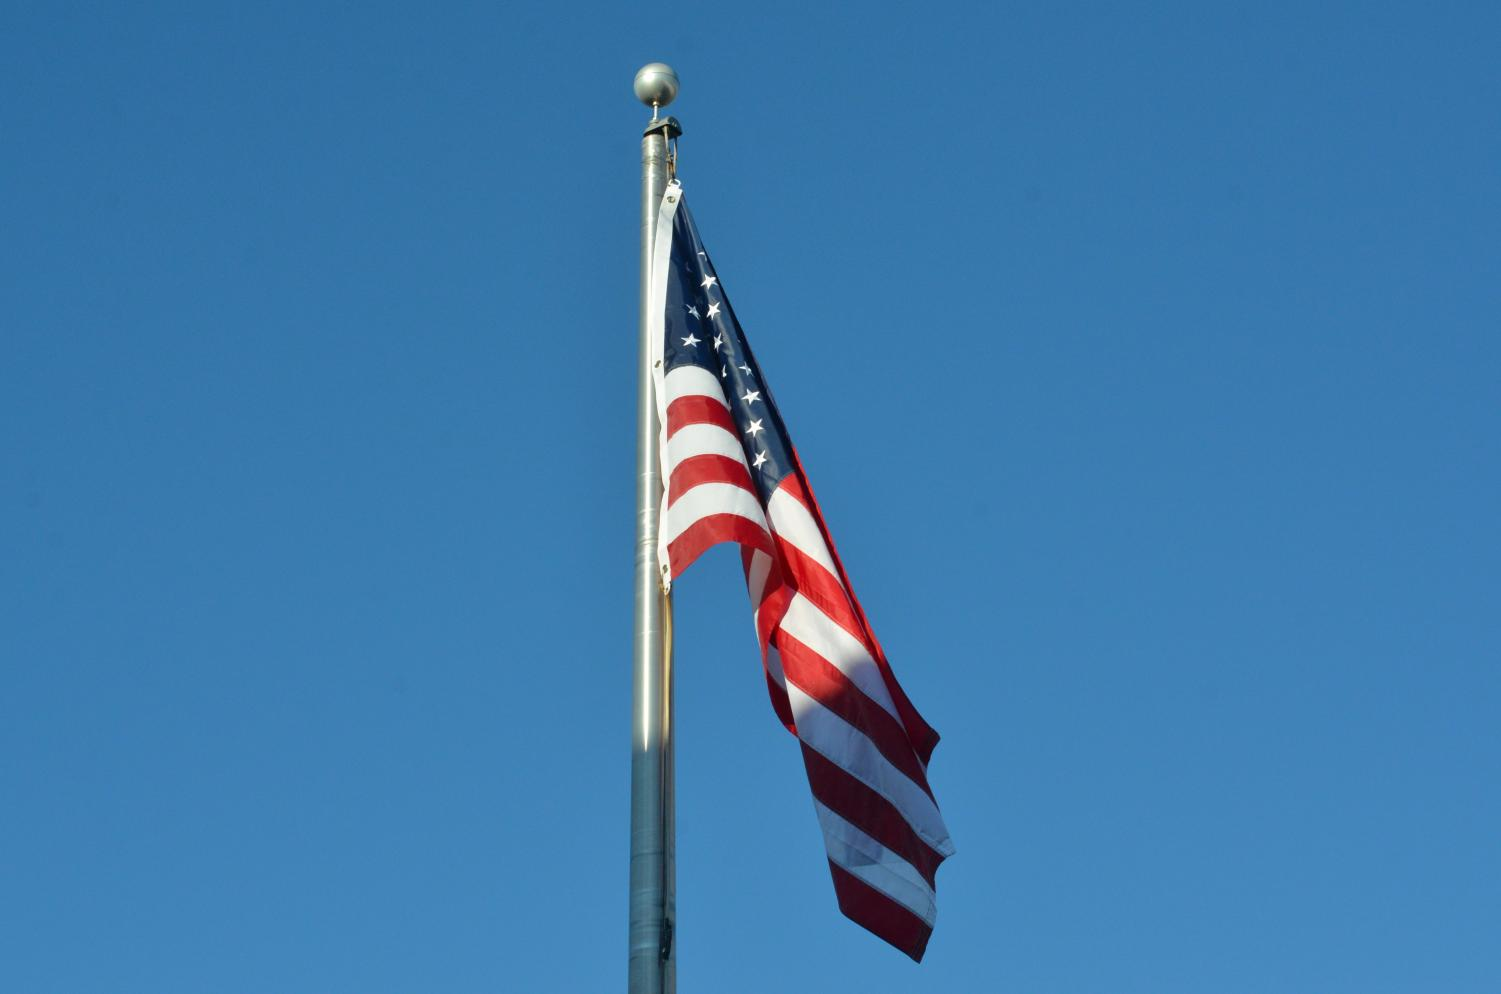 On Wednesday, February 23rd, 2021 at the front entrance of Lakeland High School is the American flag.